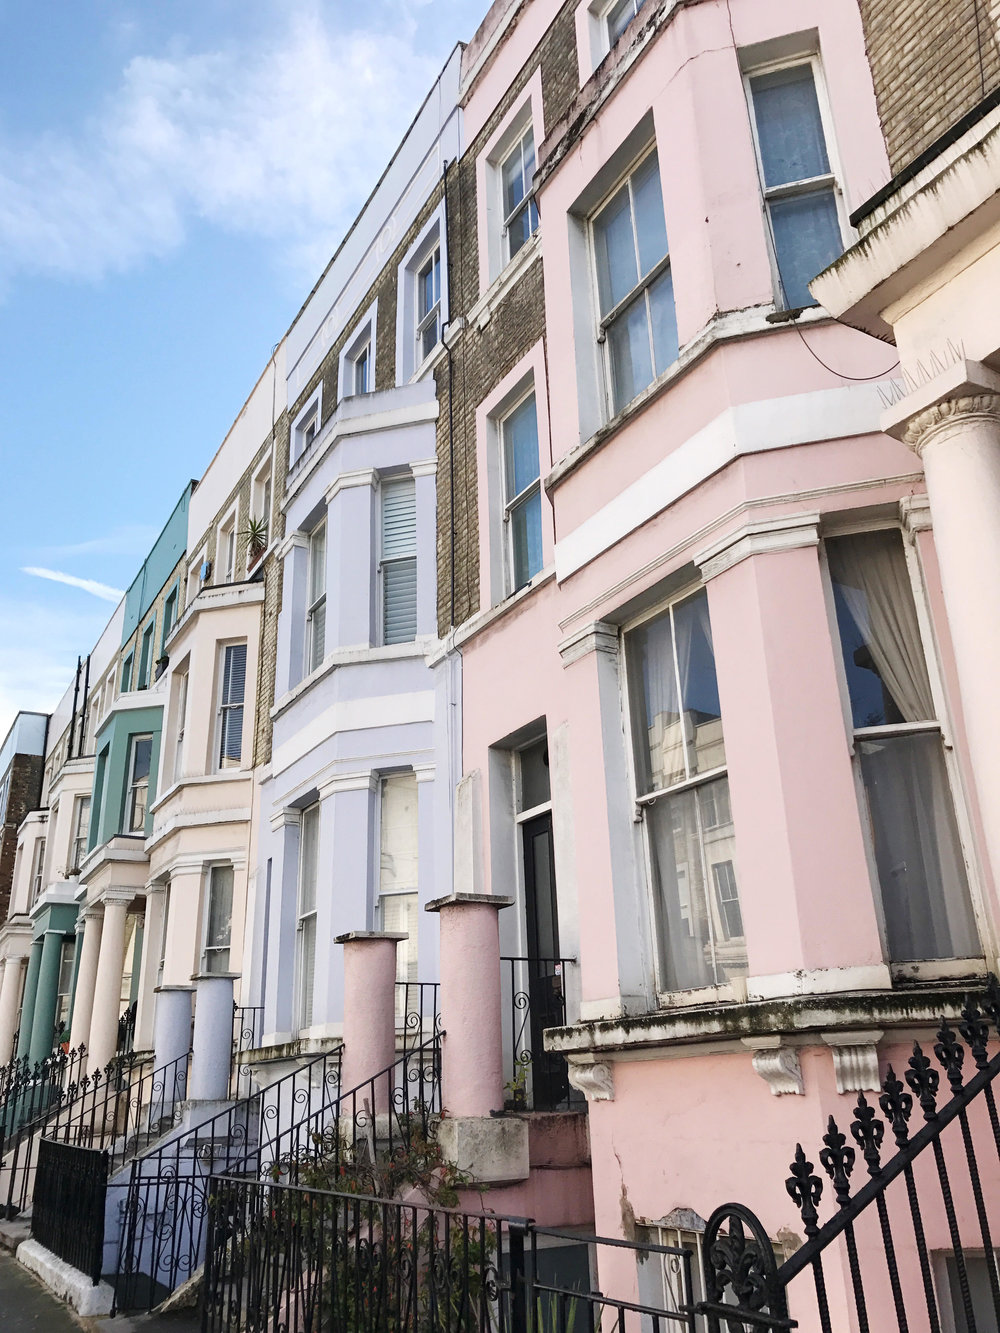 My notting hill blog - Notting Hill Turned Up The Charm With Bright Sunshine And Its Sidewalk S Endless Catwalk Of Well Heeled Residents People Chatted Over Posh Breakfasts On